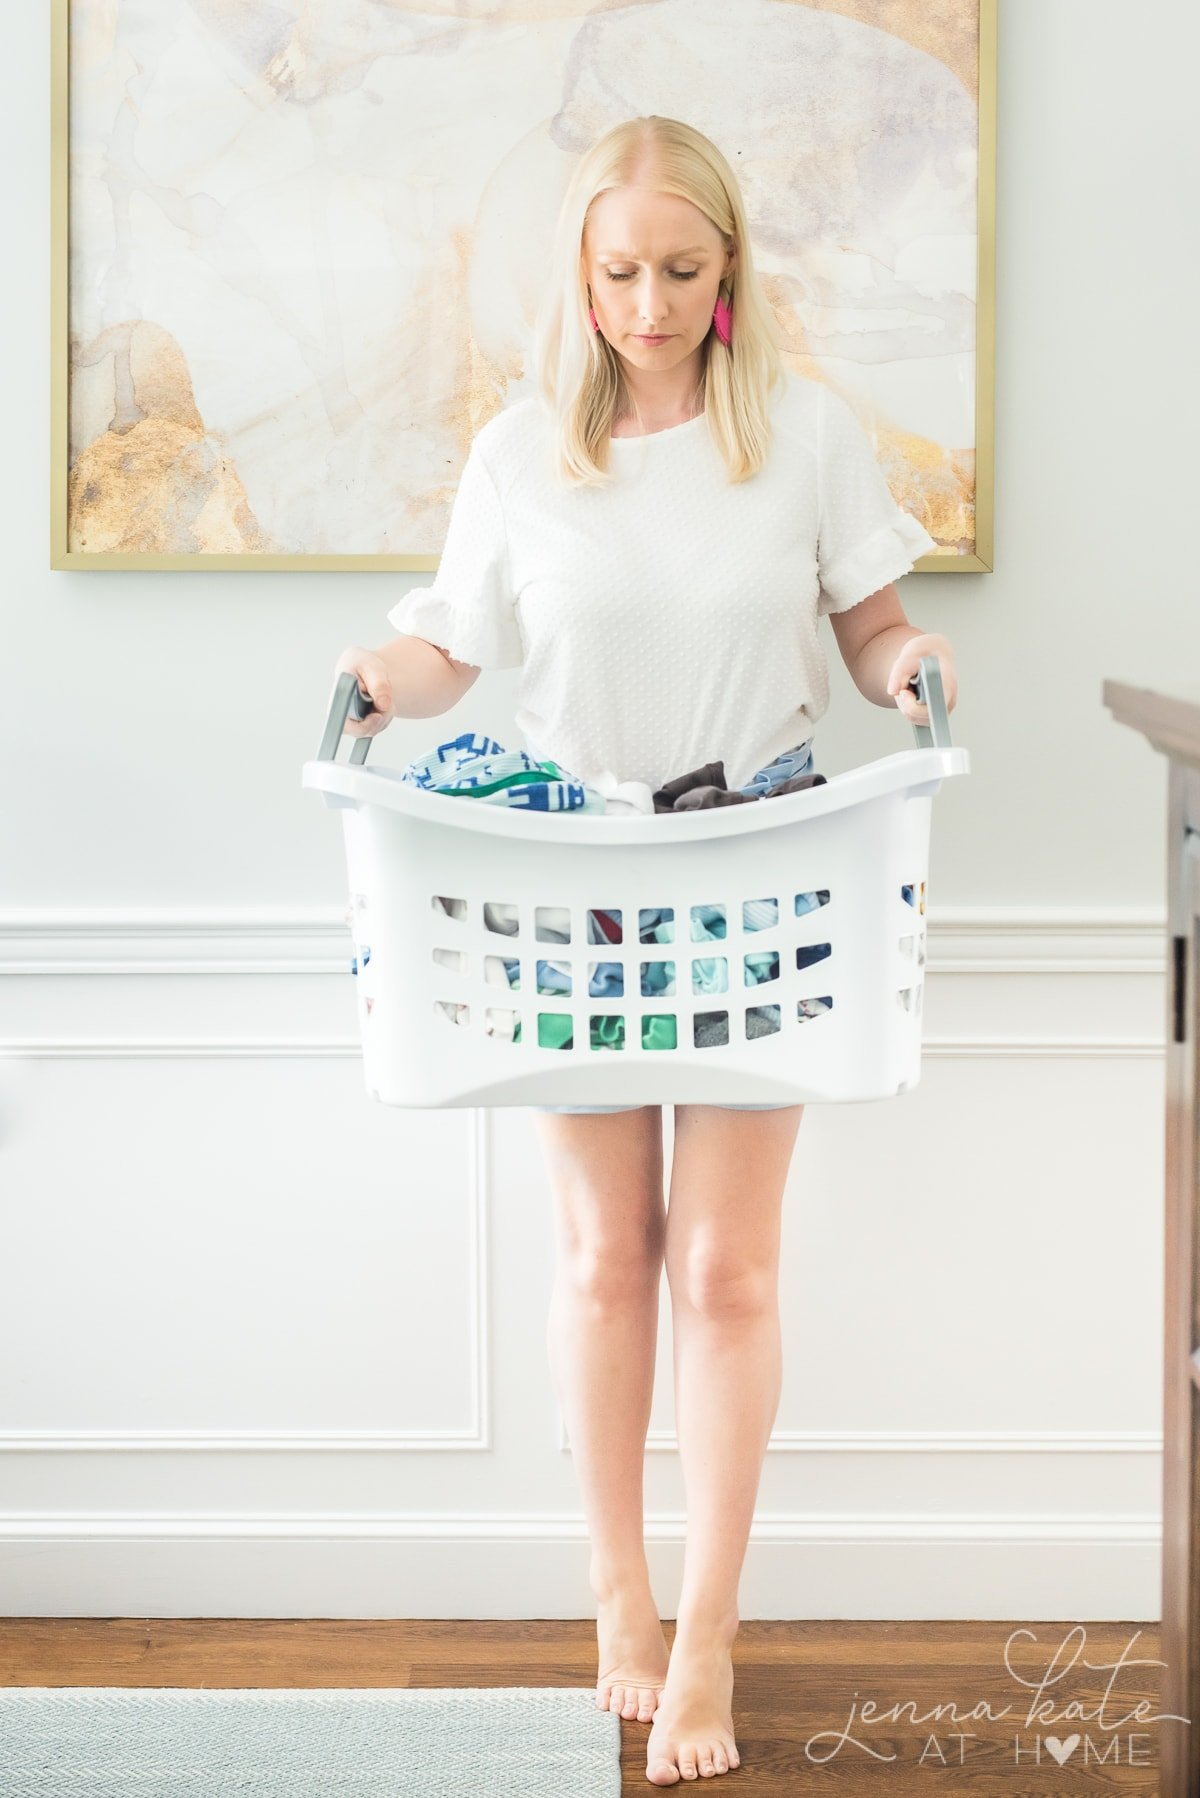 Do one load of laundry every day